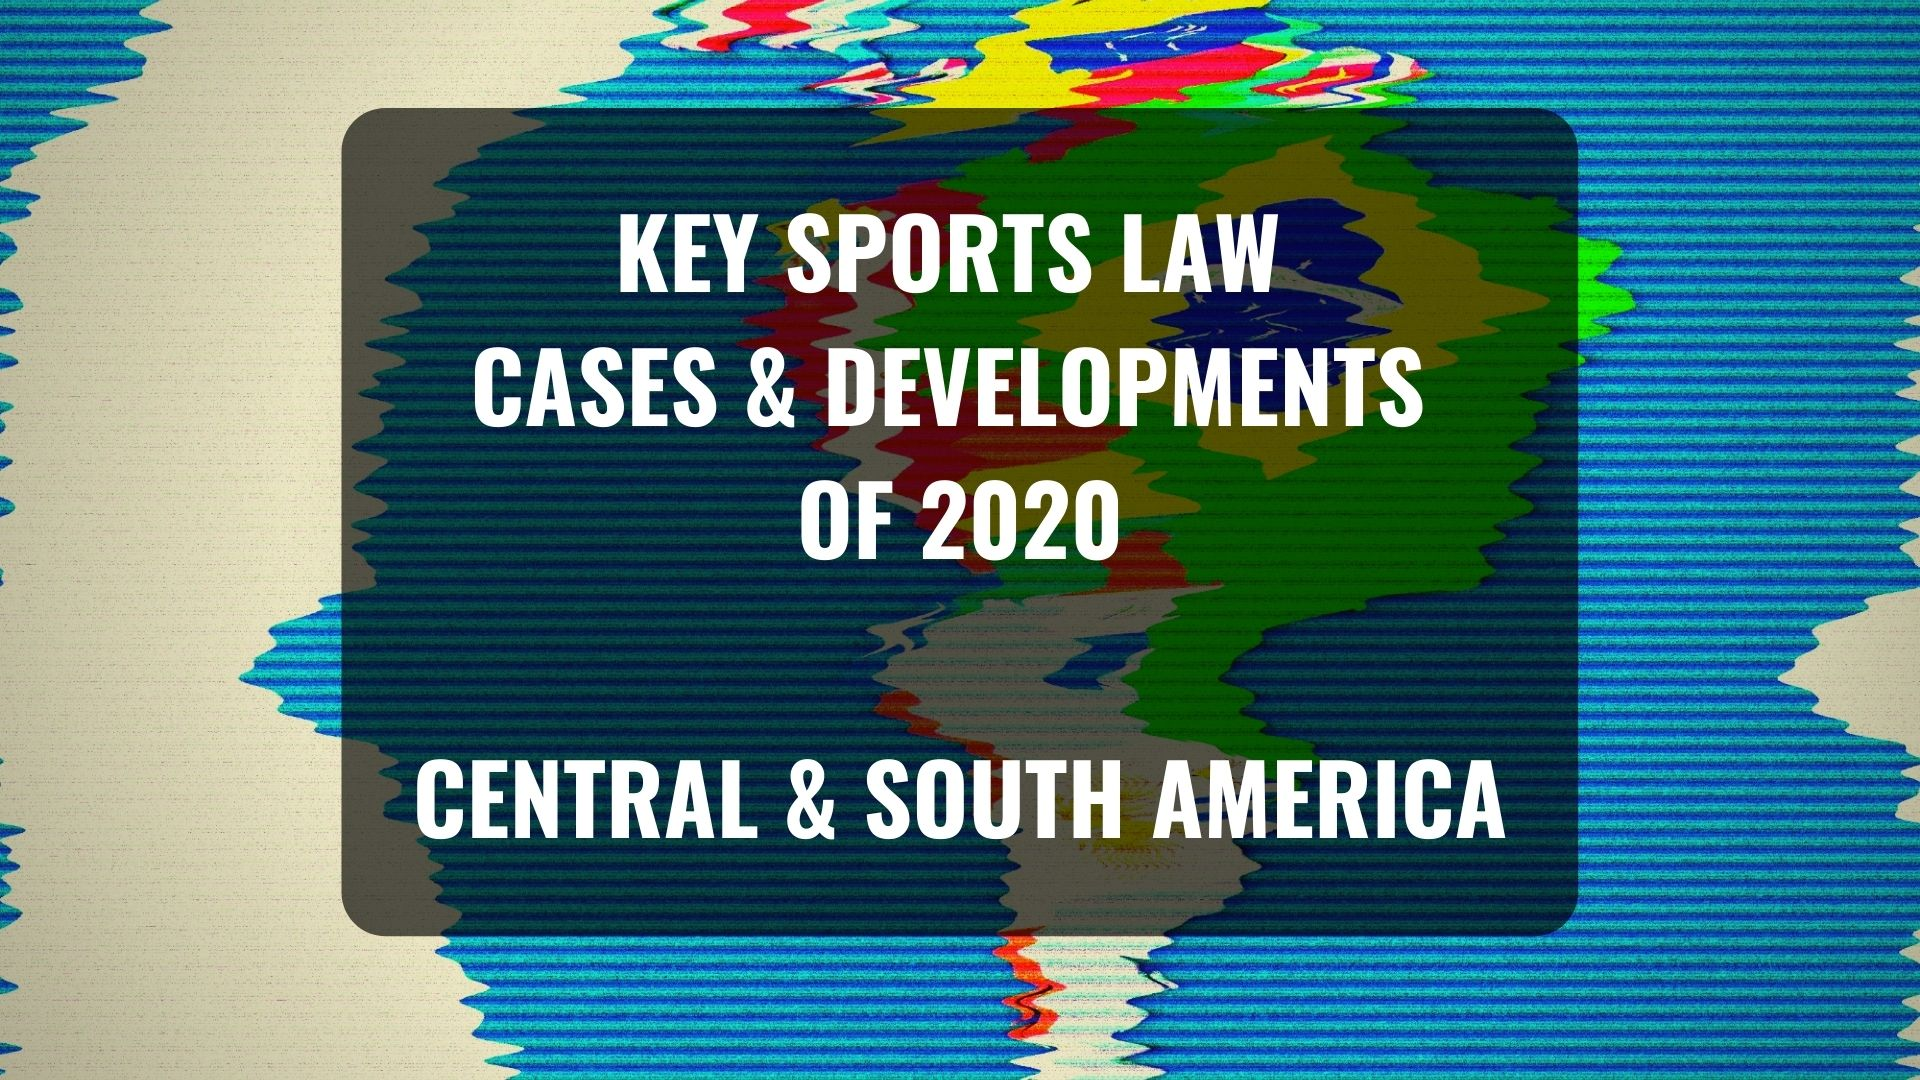 Key sports law cases and developments of 2020 – South America